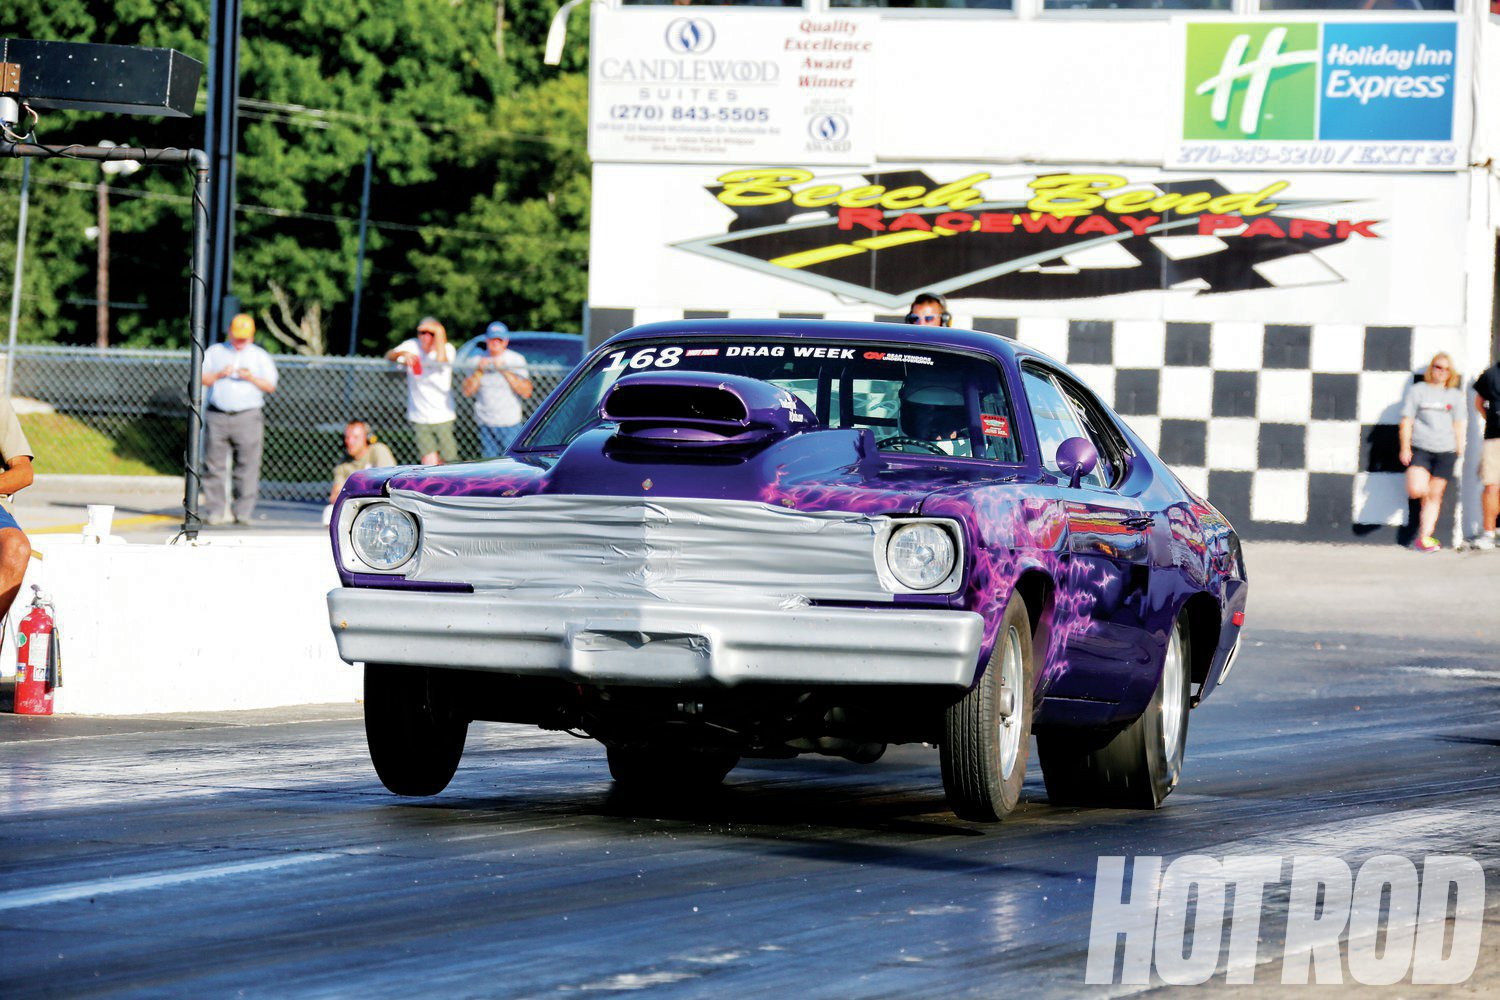 On Day 5, Eddie used what became known as the Freiburger trick at the first Drag Week™: blocking the grille for more mph.